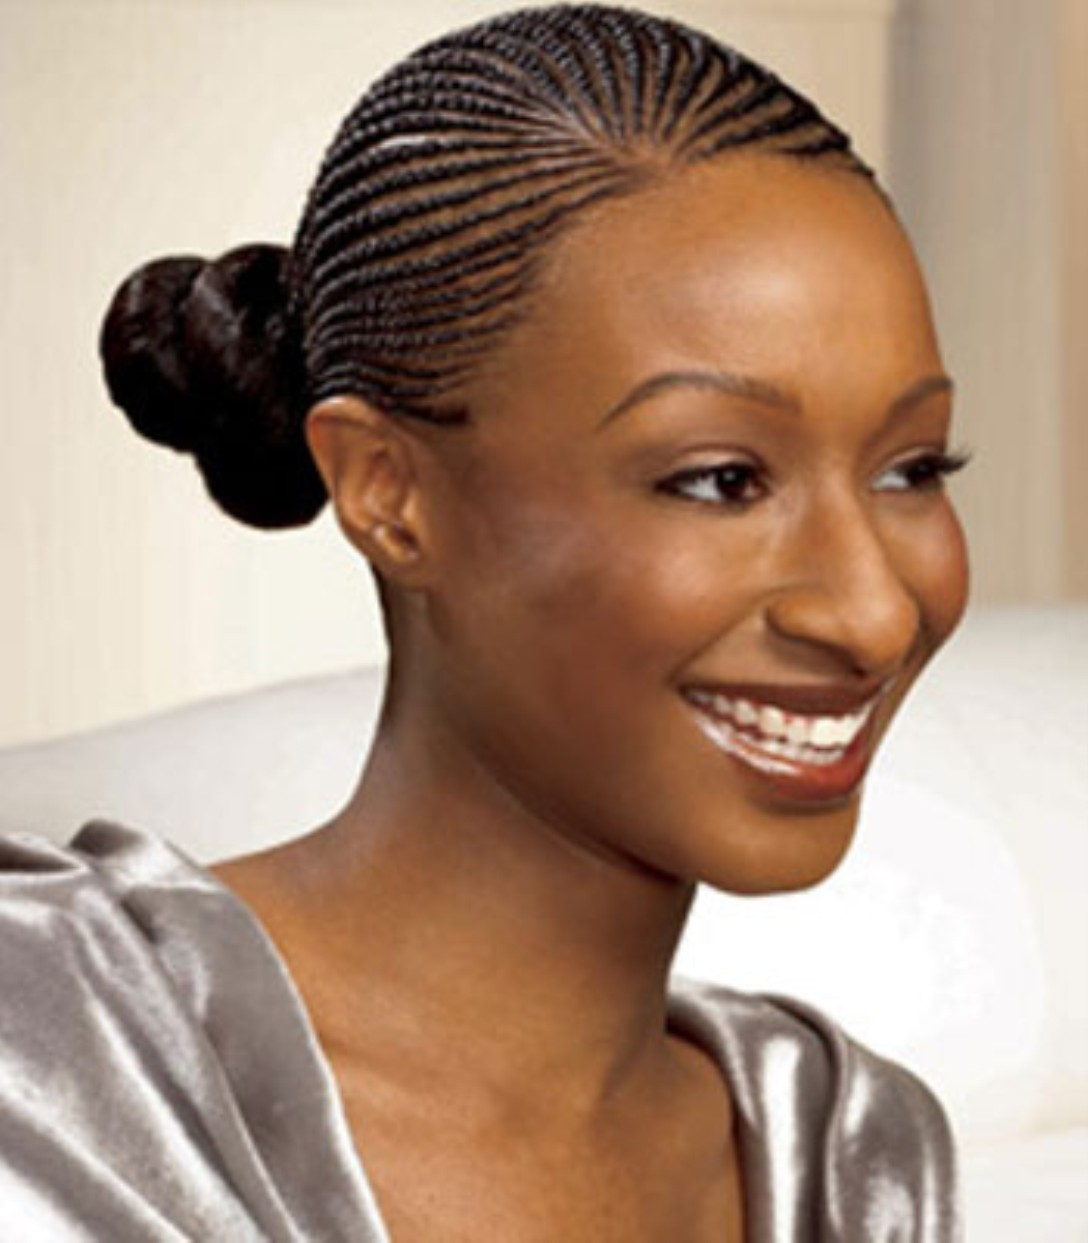 Marvelous Best African Braids Hairstyle You Can Try Now Fave Hairstyles Short Hairstyles For Black Women Fulllsitofus